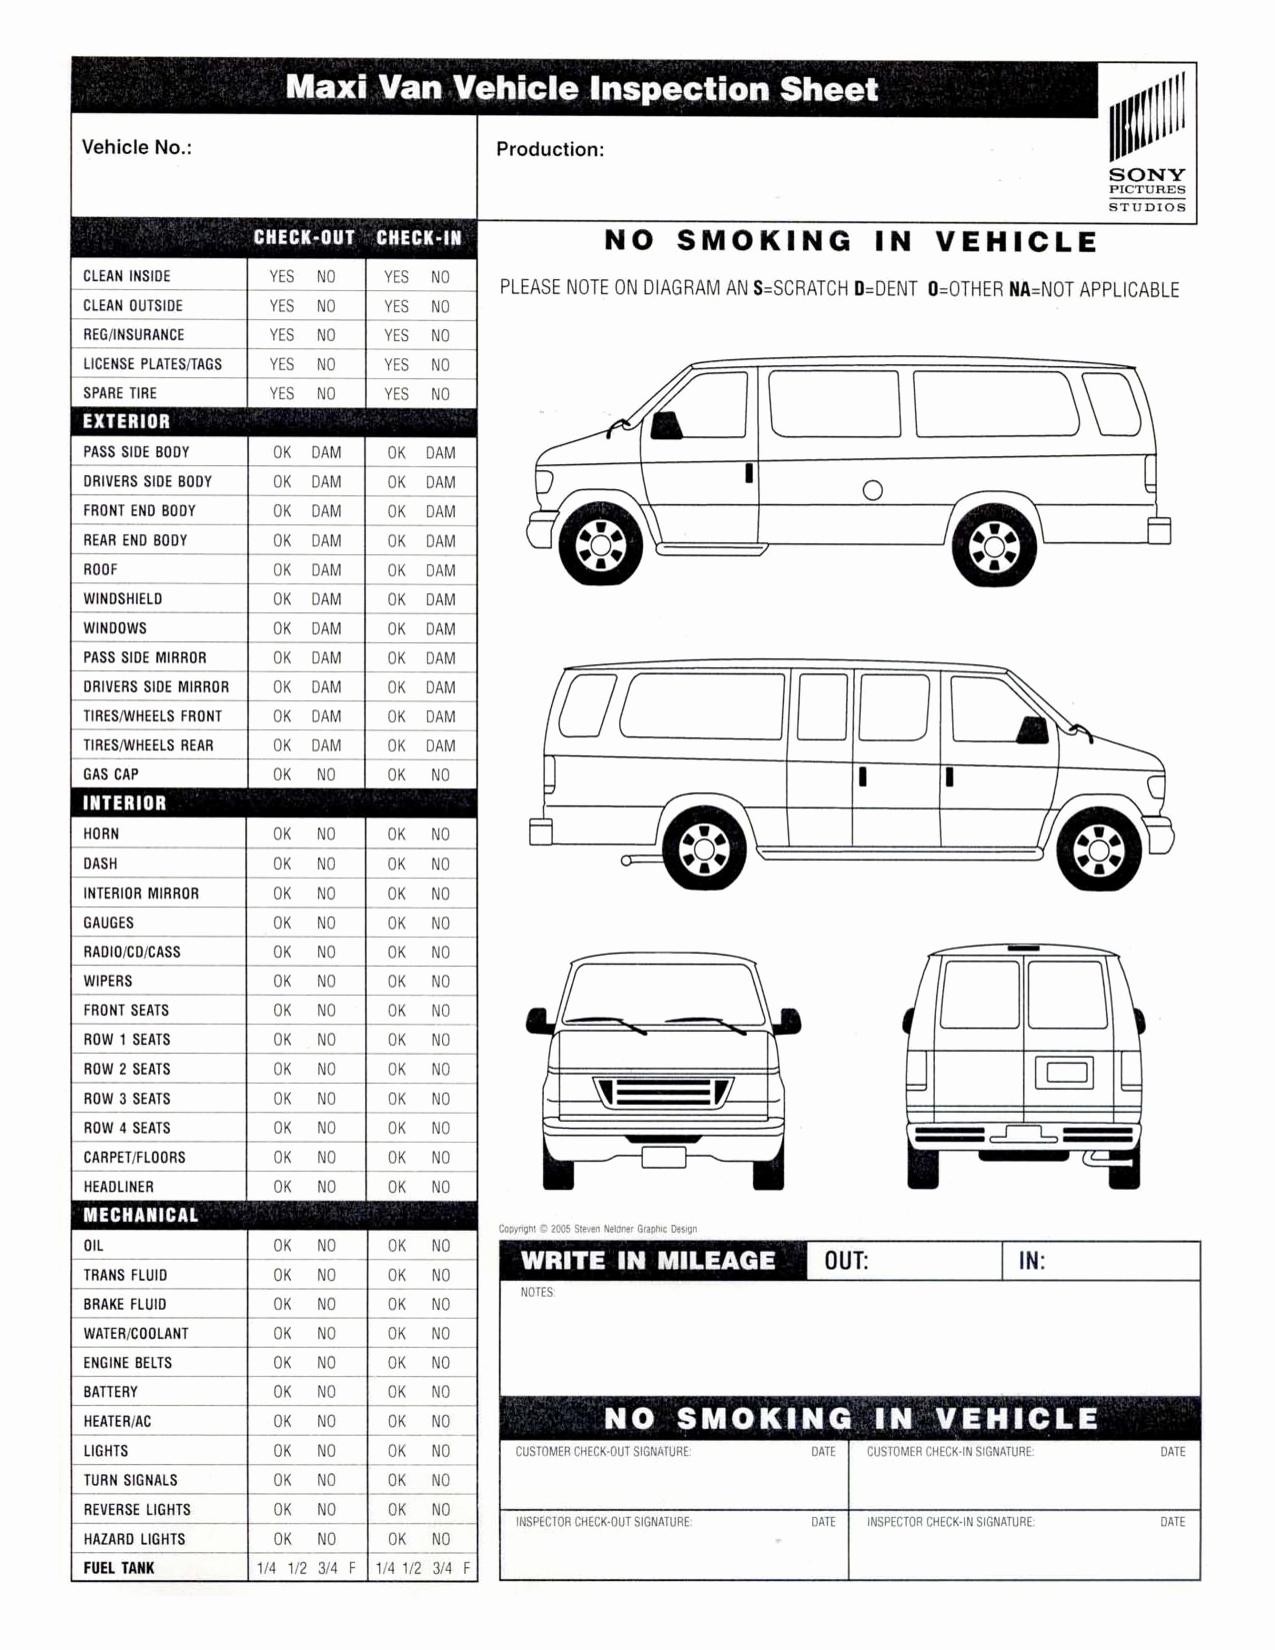 Vehicle Inspection forms Templates Fresh Vehicle Inspection Sheet Template